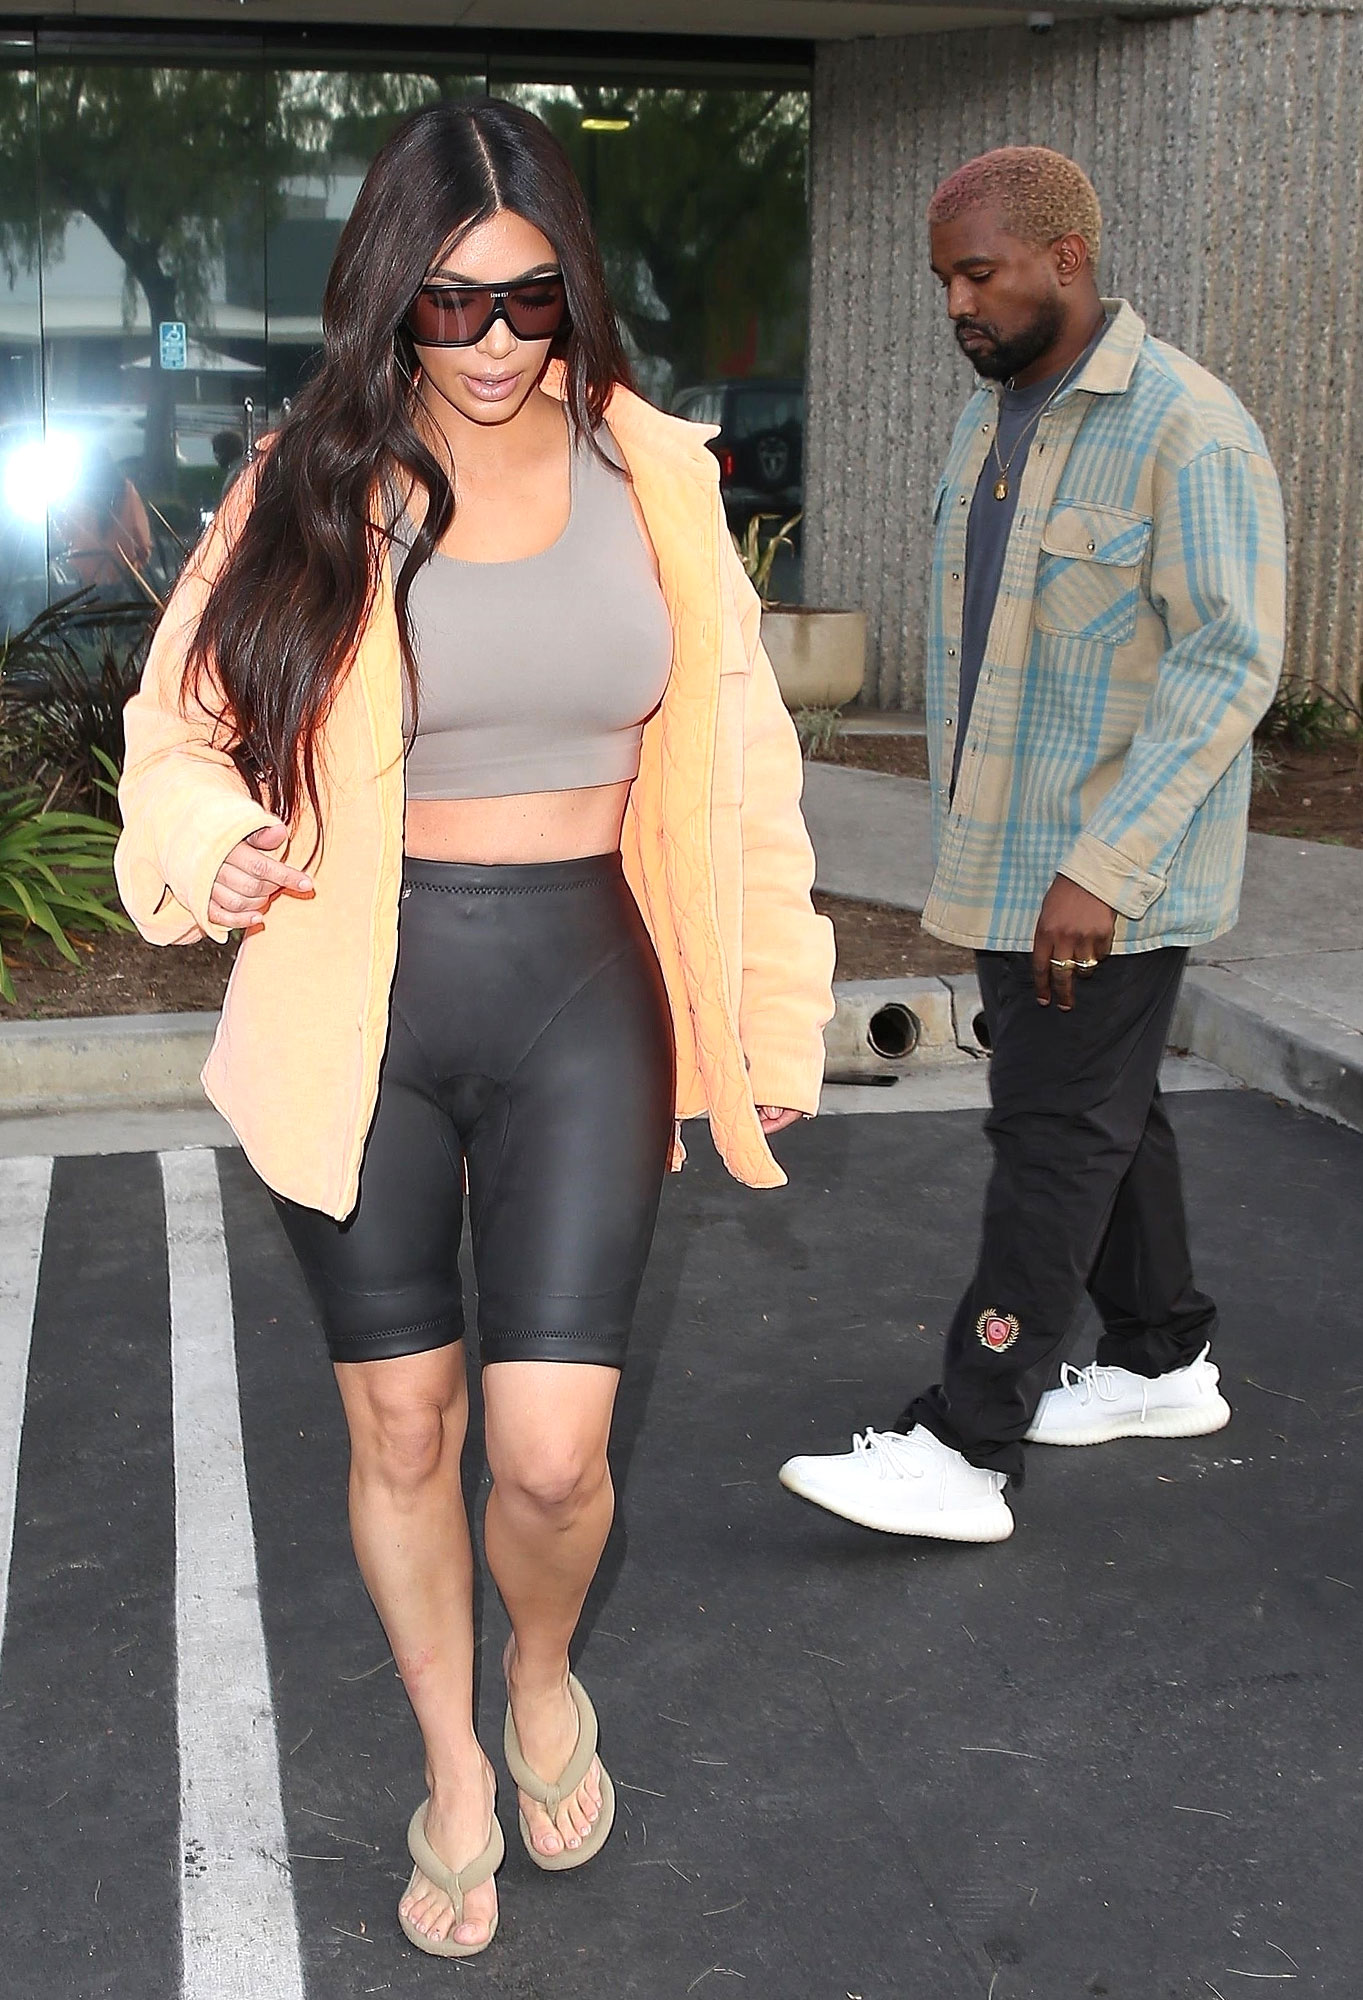 *EXCLUSIVE* Kim Kardashian wears biker shorts and bra top for mid-day visit to Kanye at the Studio